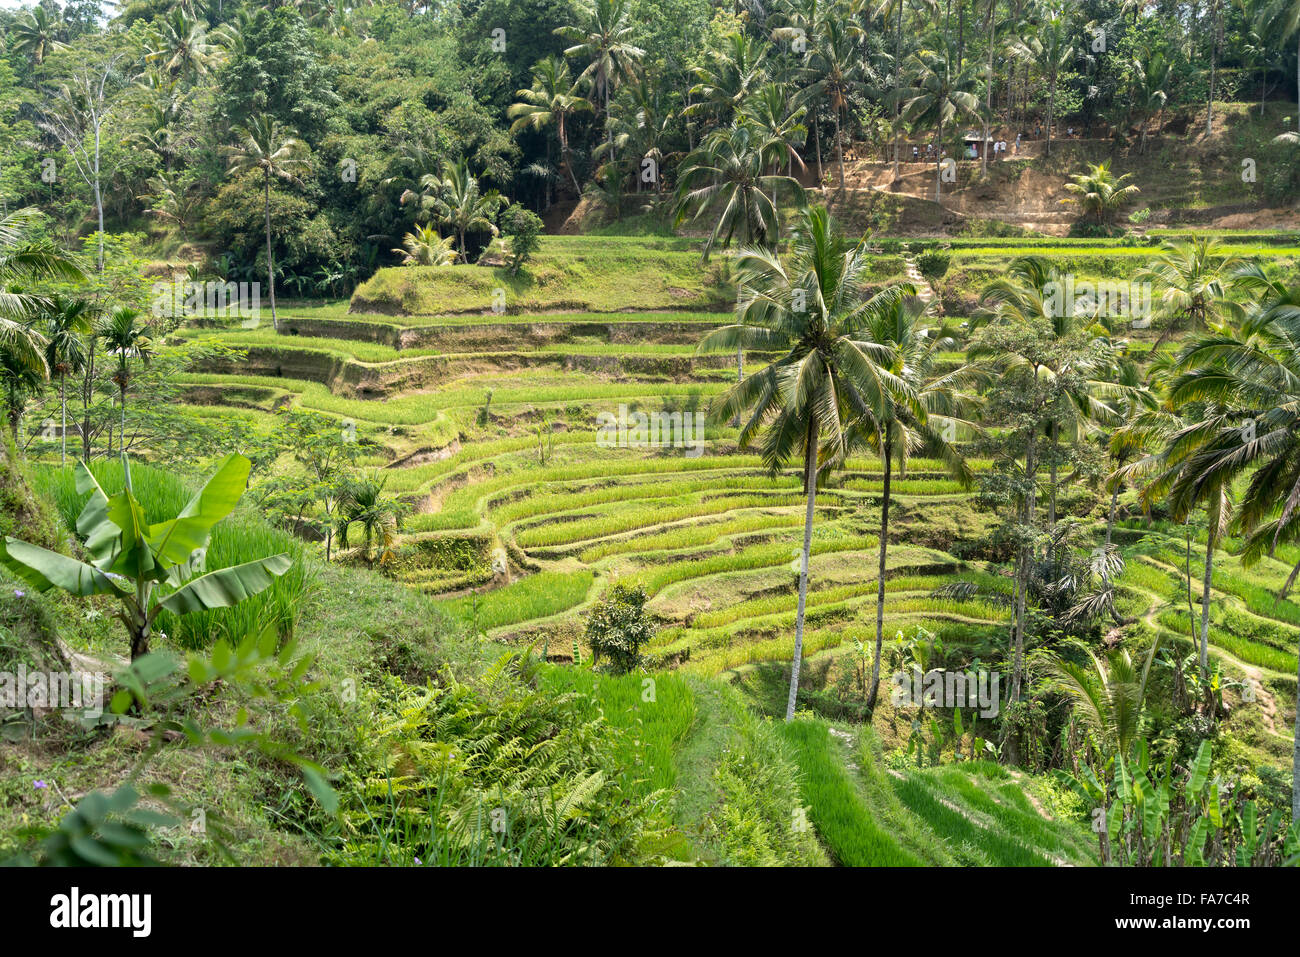 Tegalalang Rice Terraces near Ubud, Bali, Indonesia - Stock Image